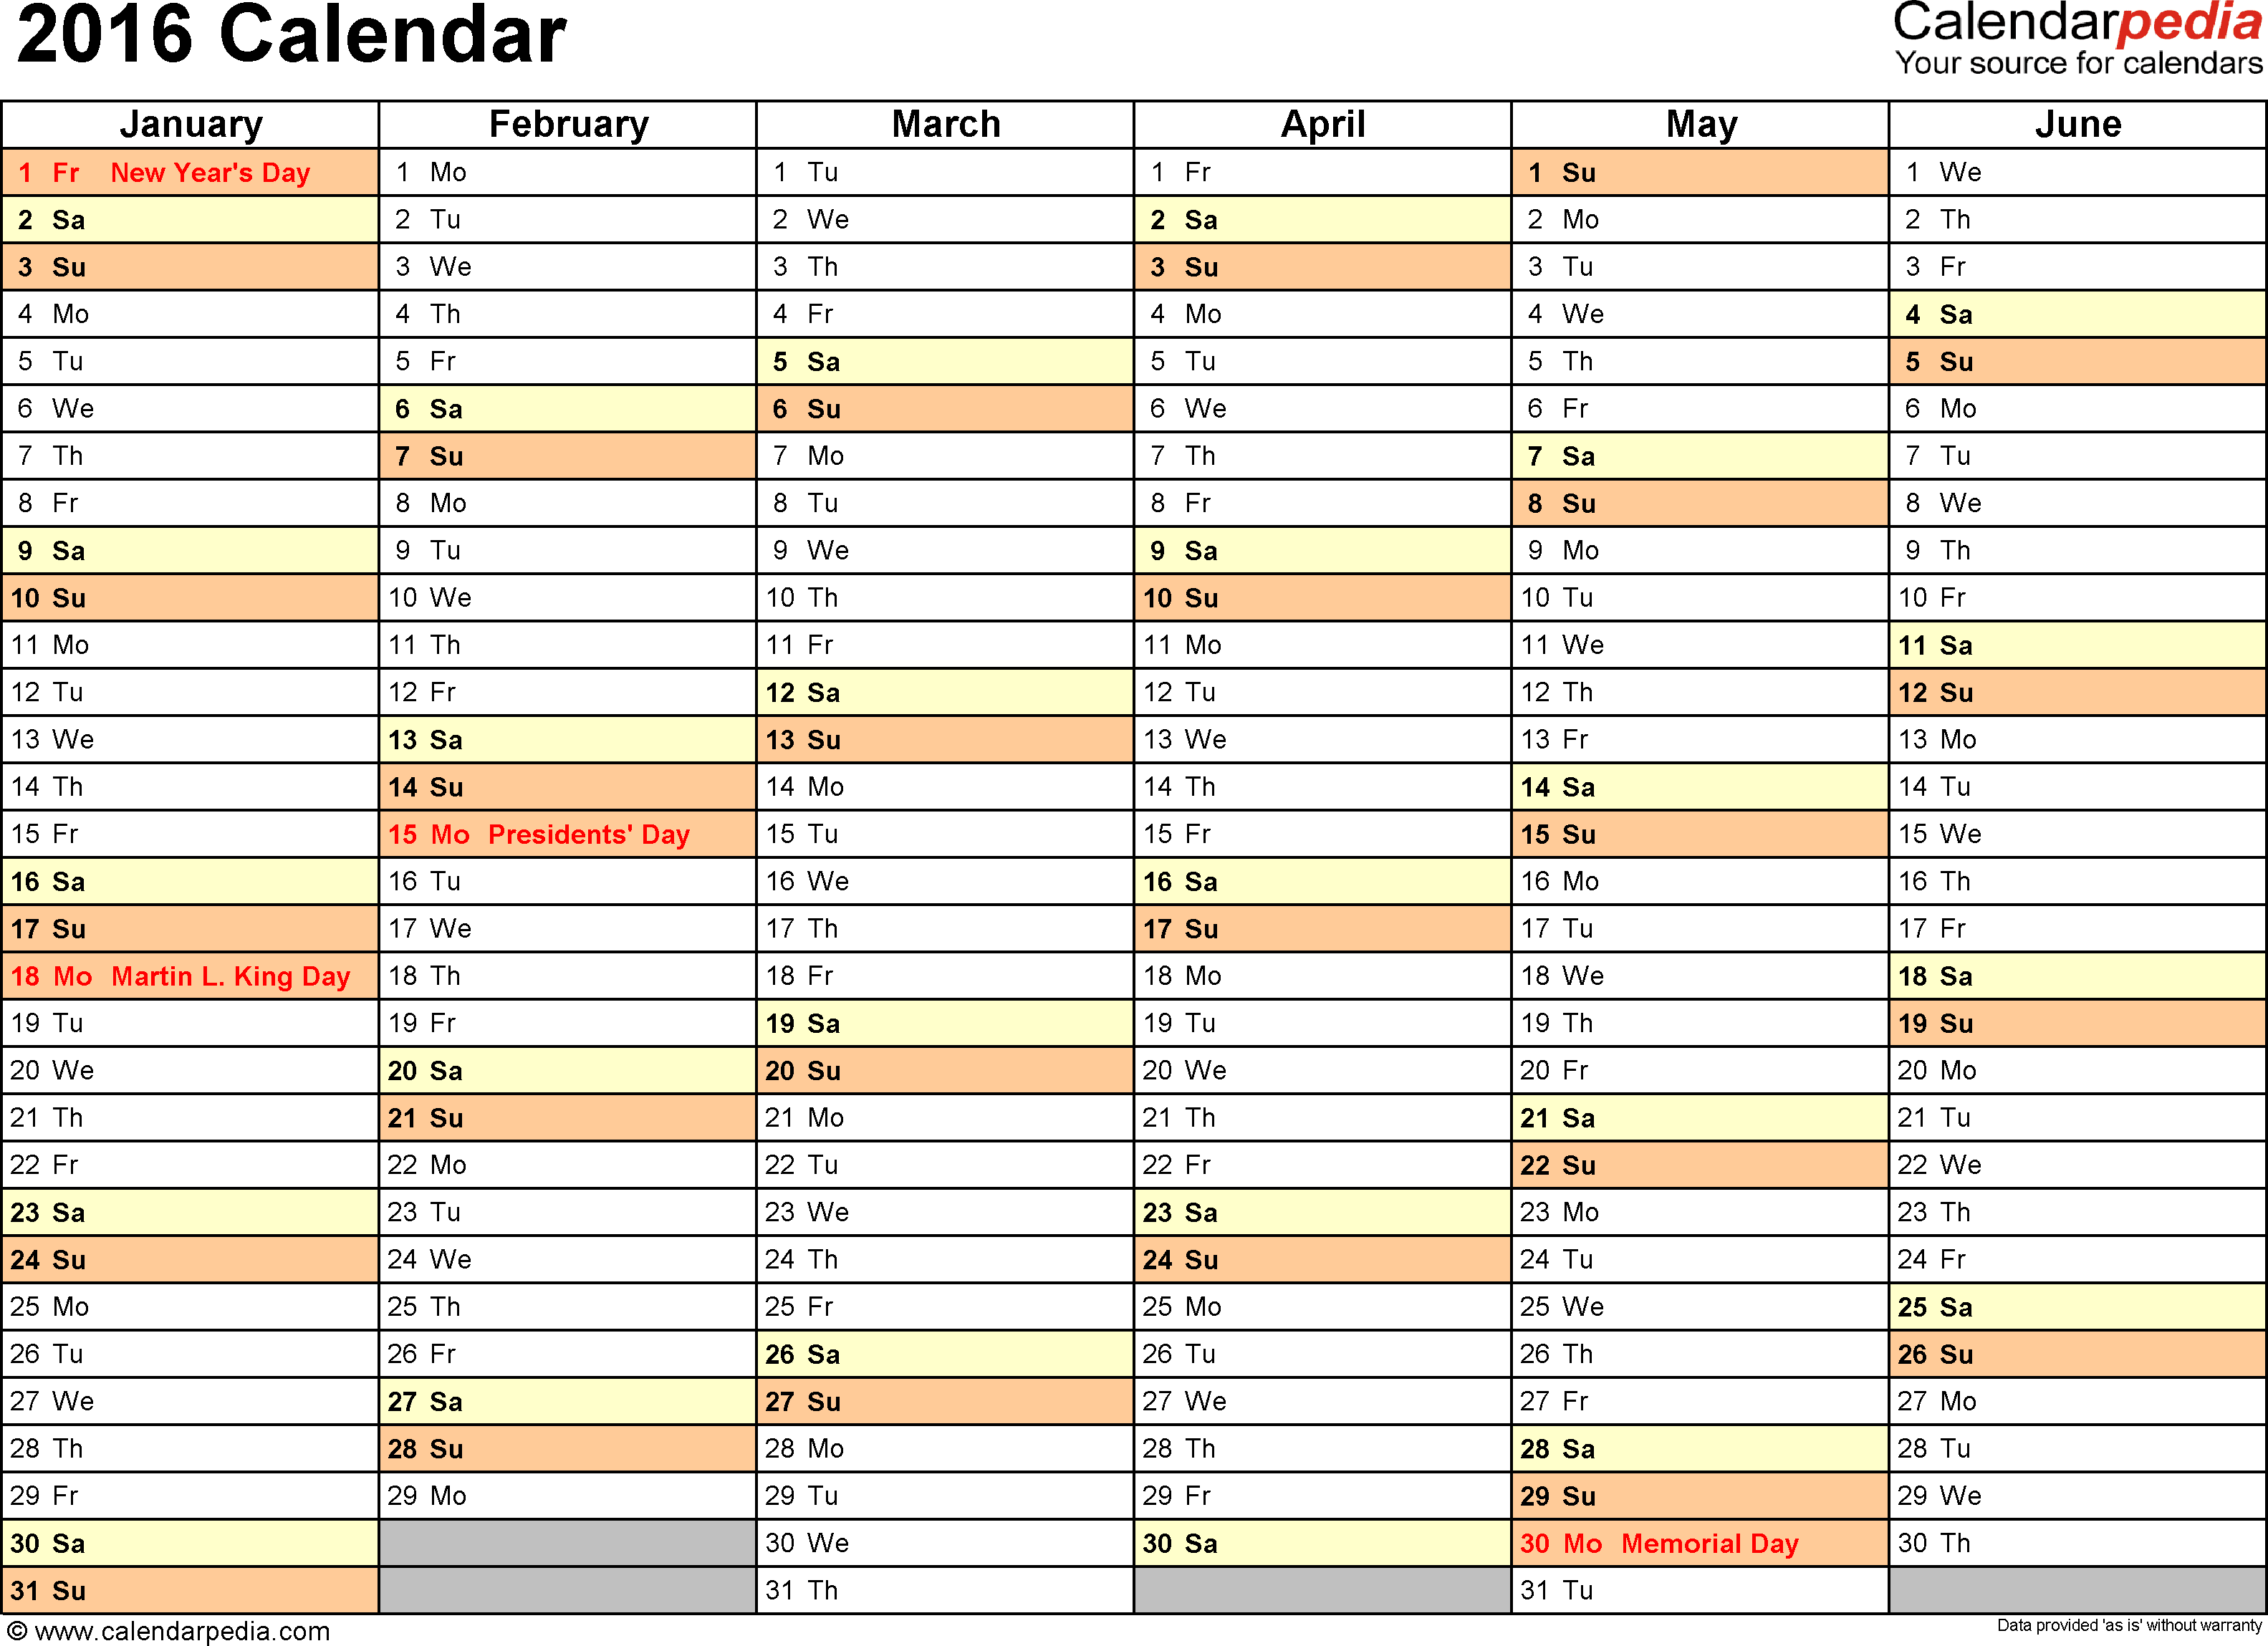 Template 4: 2016 Calendar for PDF, months horizontally, 2 pages, landscape orientation